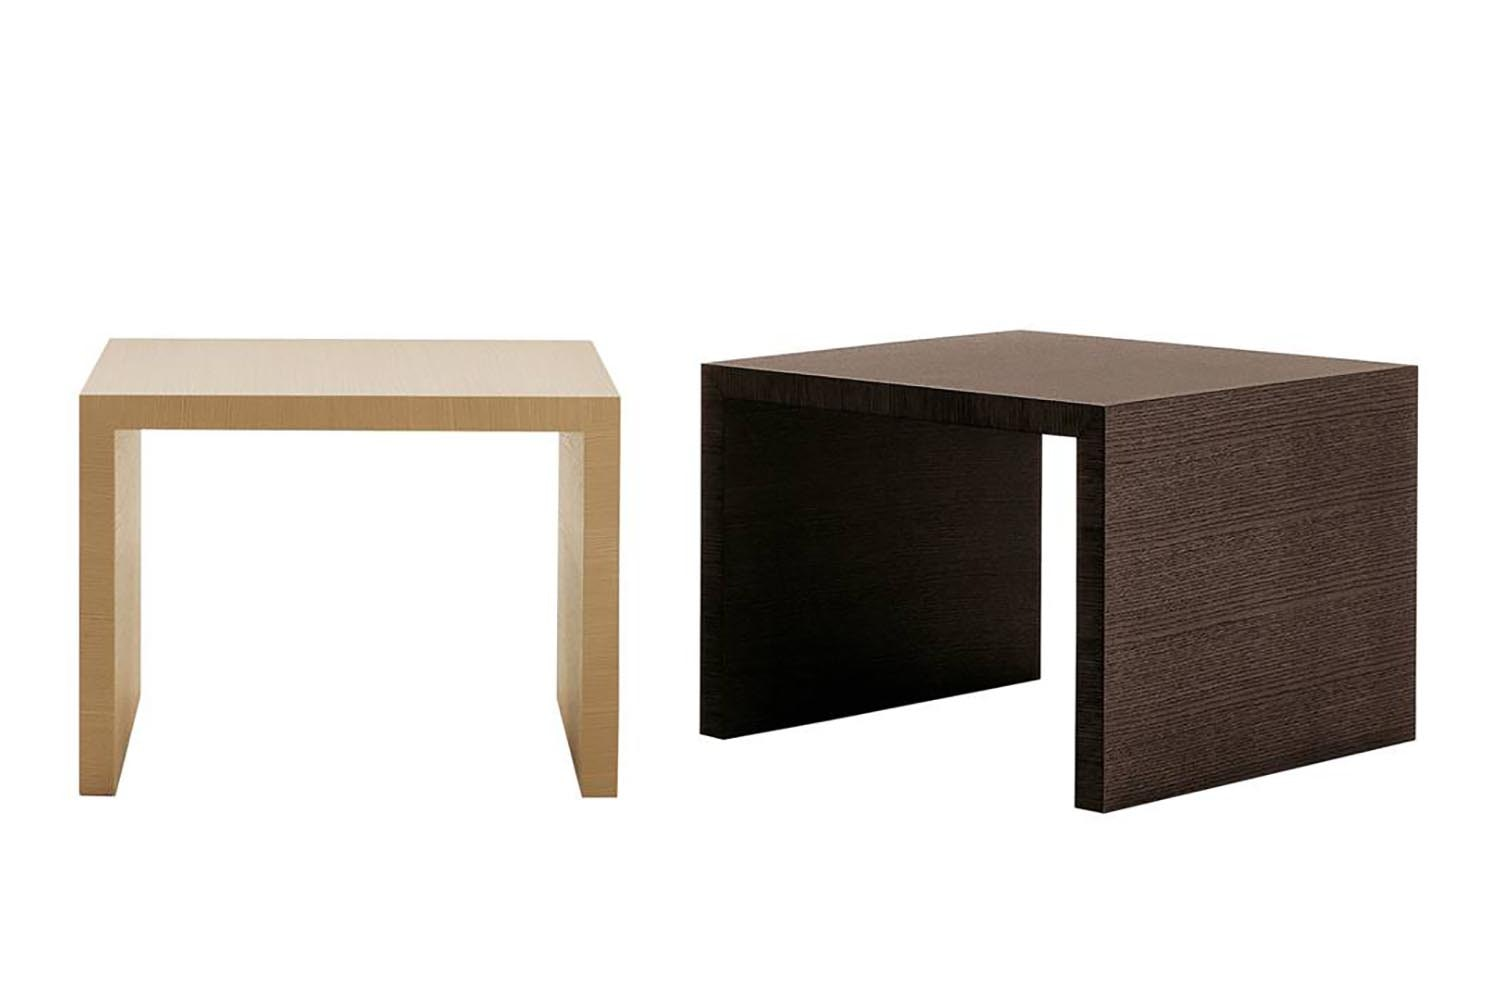 Arke' Small Table by Antonio Citterio for Maxalto